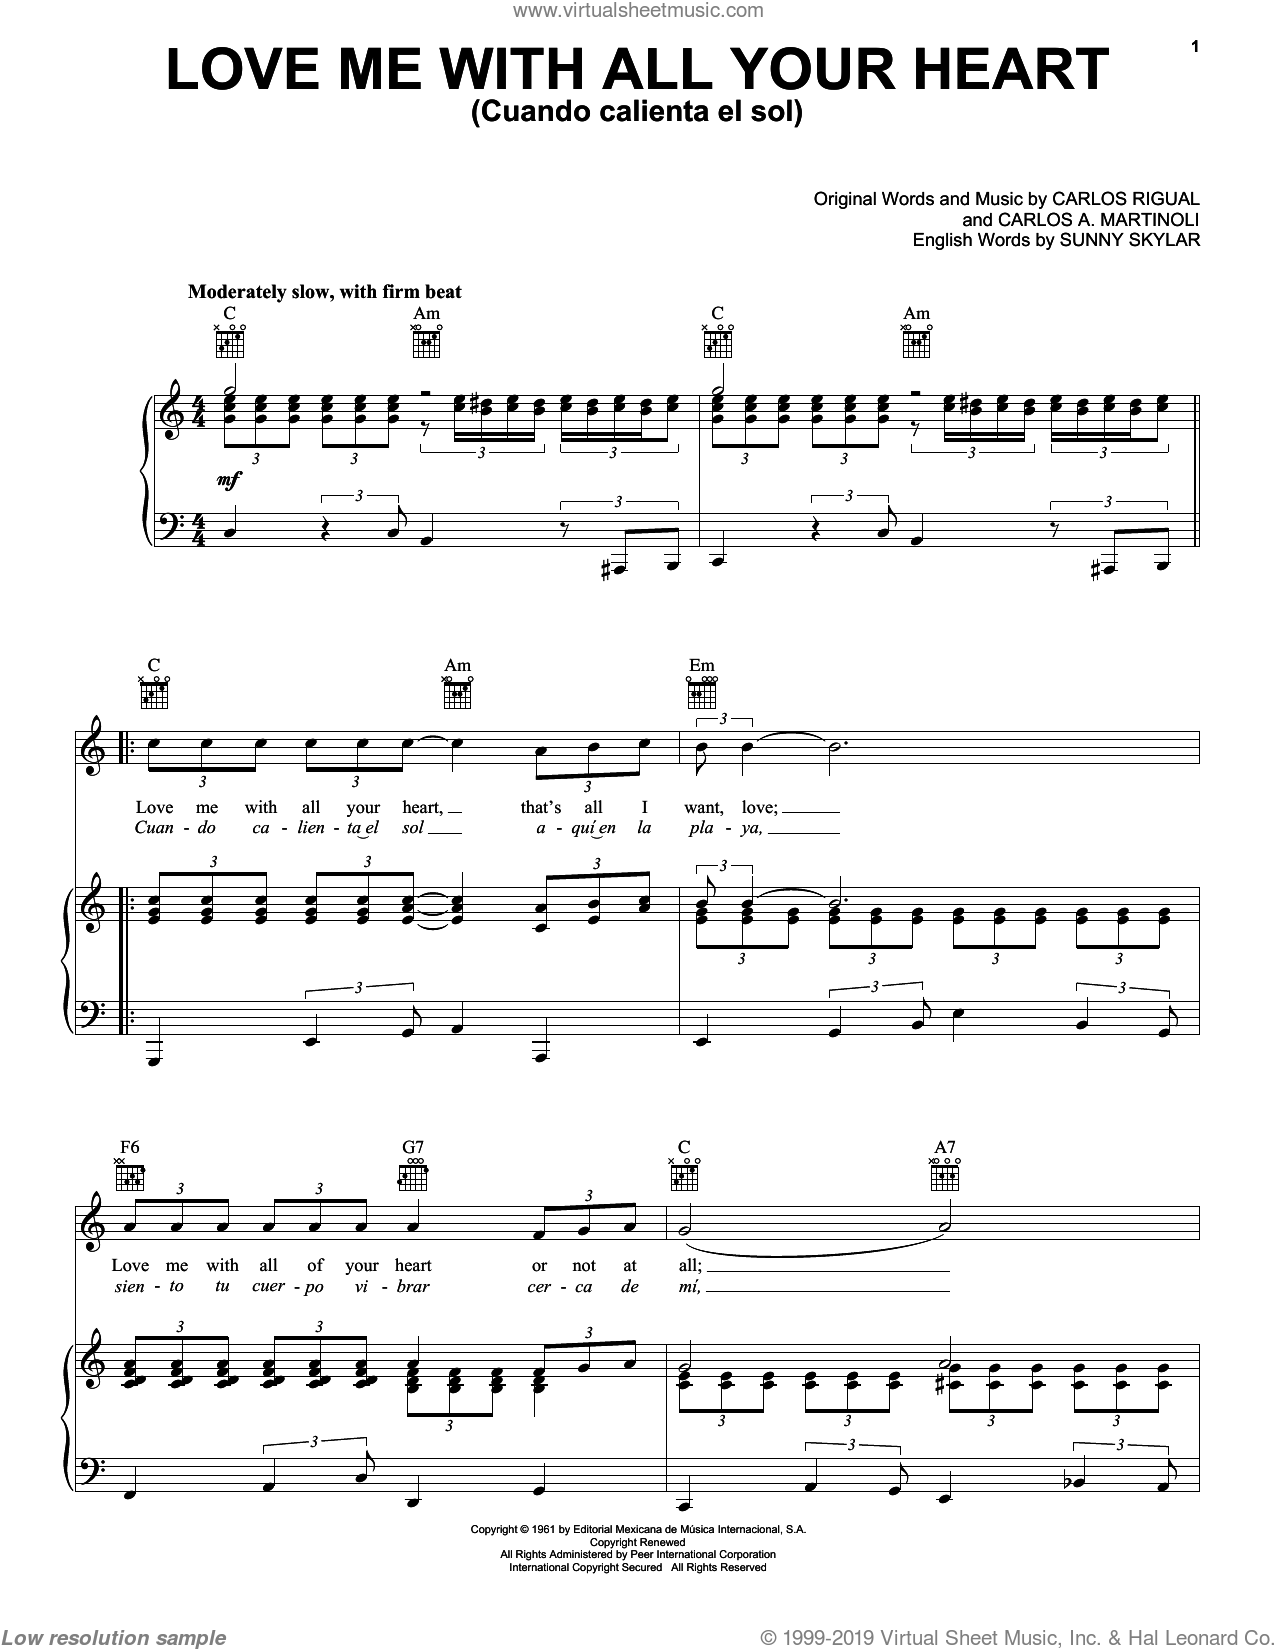 Love Me With All Your Heart (Cuando Calienta El Sol) sheet music for voice, piano or guitar by Sunny Skylar